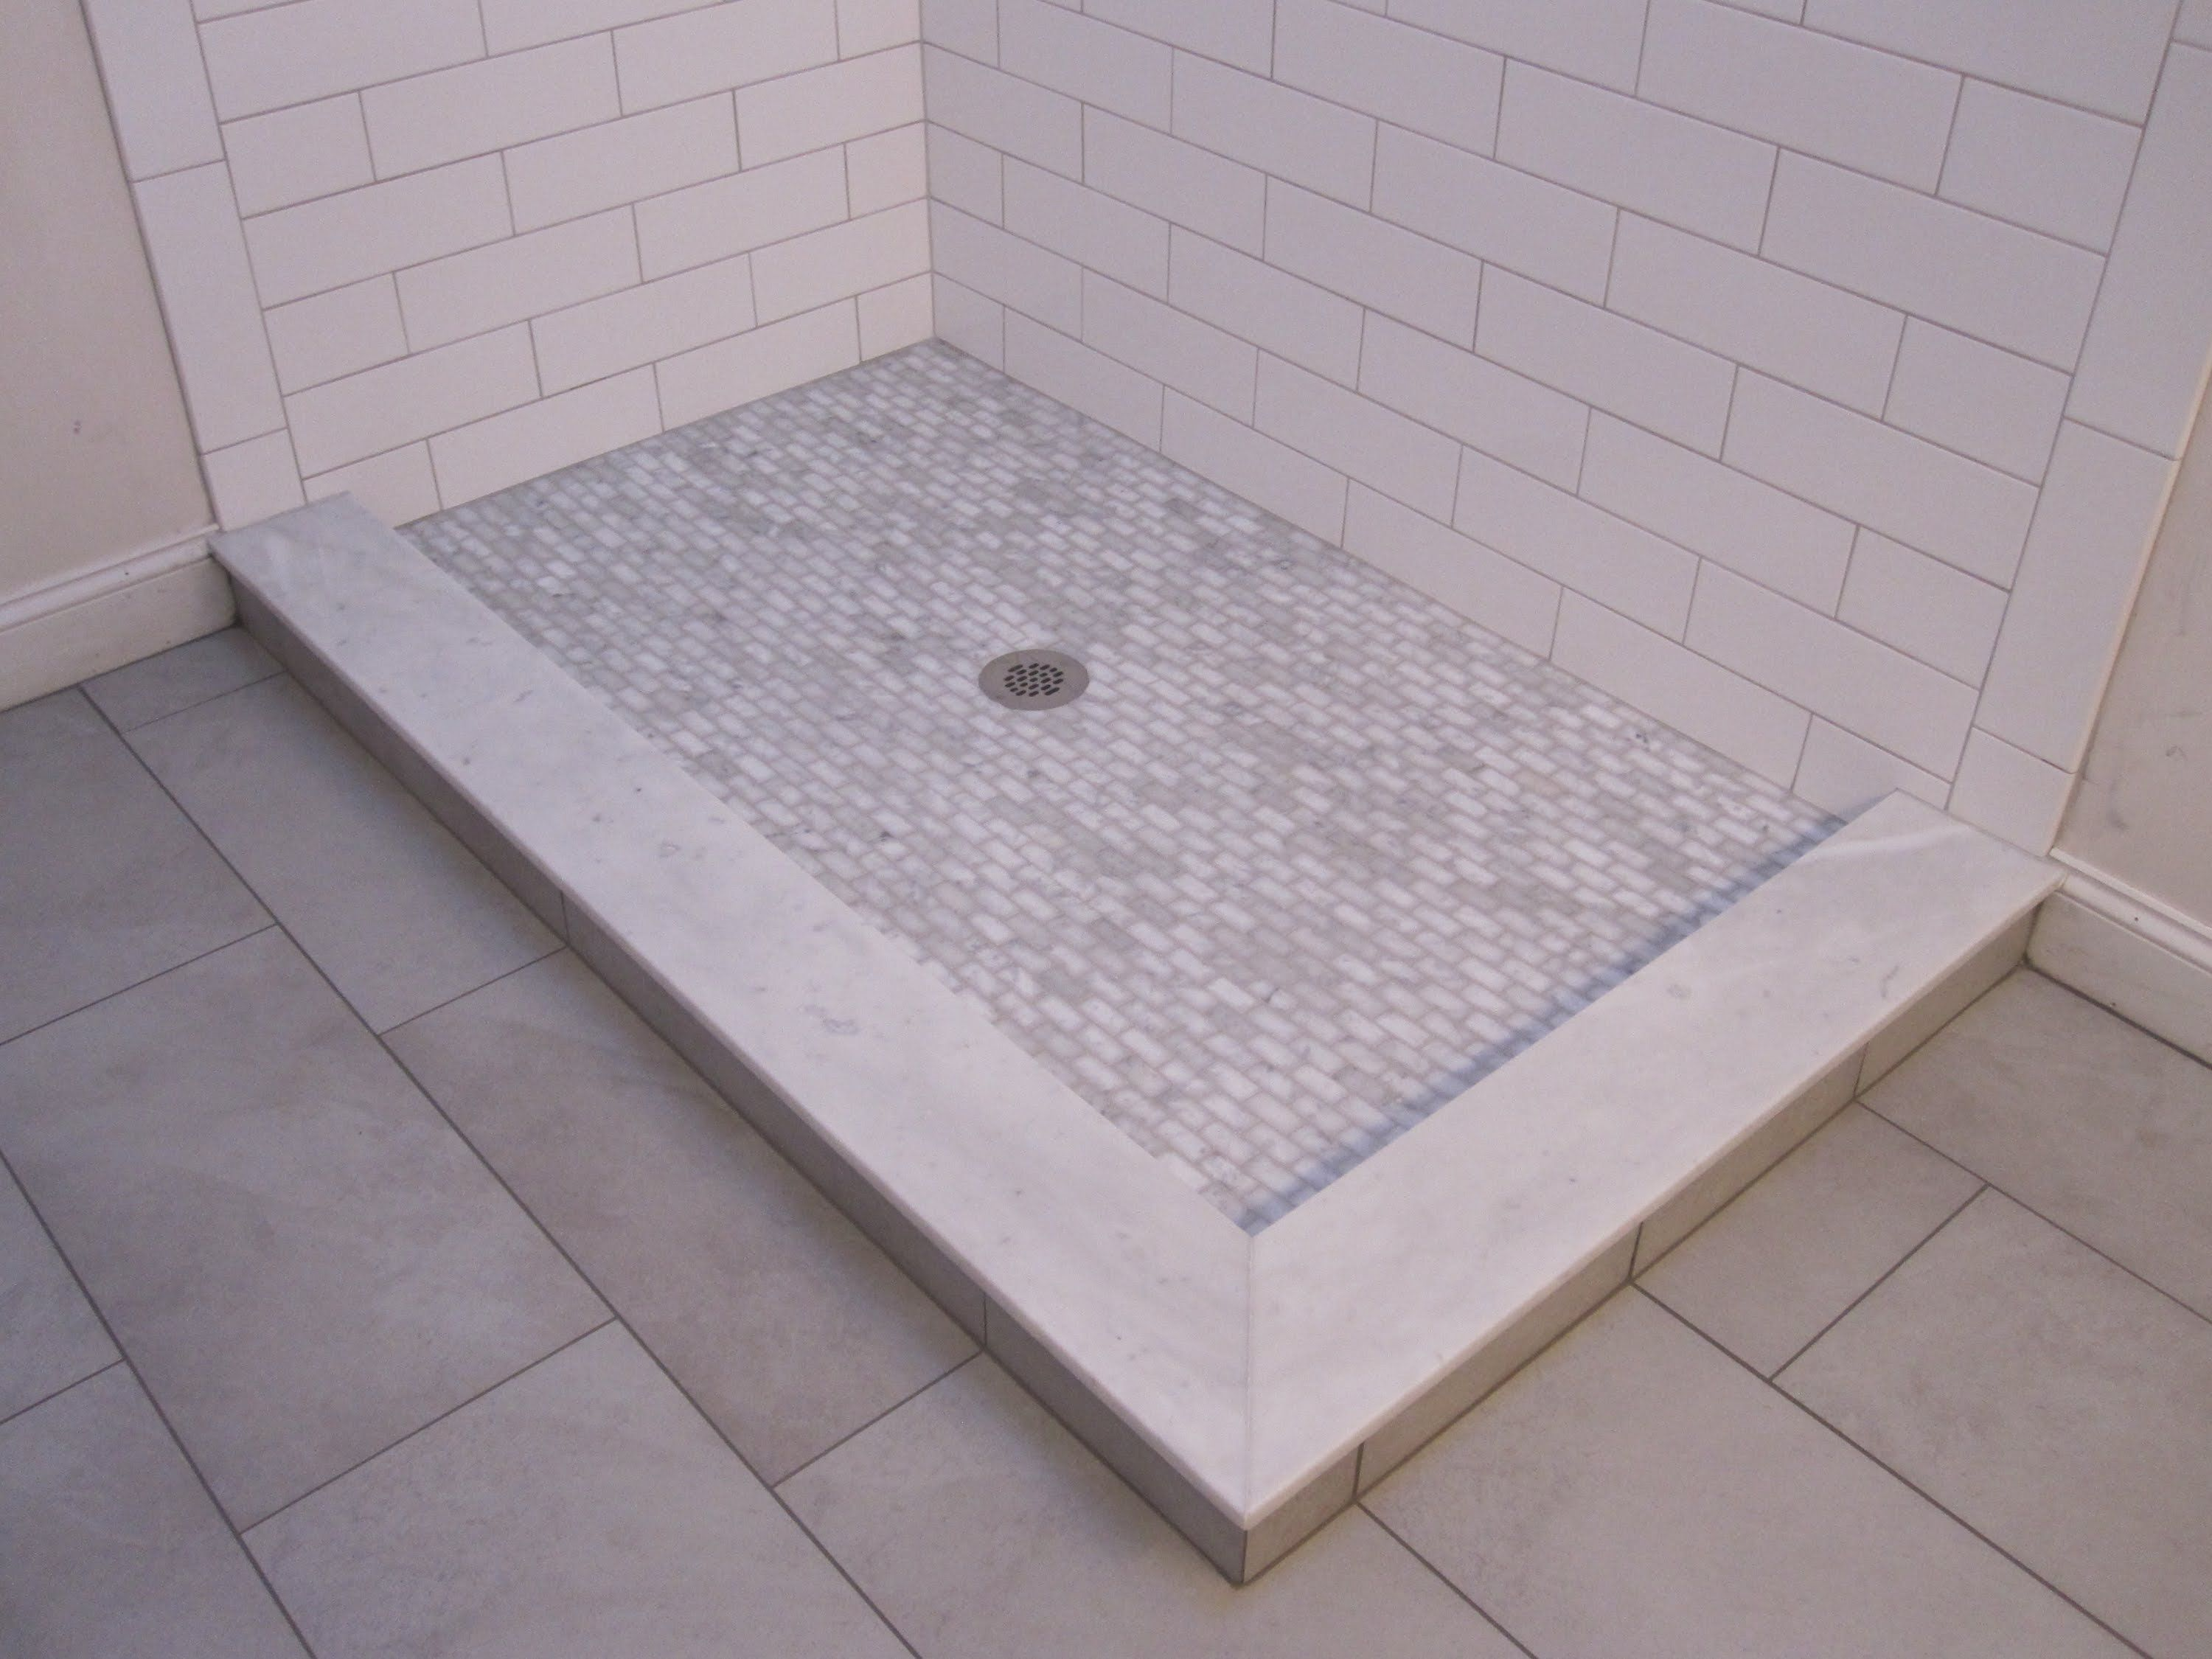 Lovely Aquaticu0027s New Subway Tile Family Of Tub Showers And Showers Offers Fresh  Take On Timeless, Classic Design